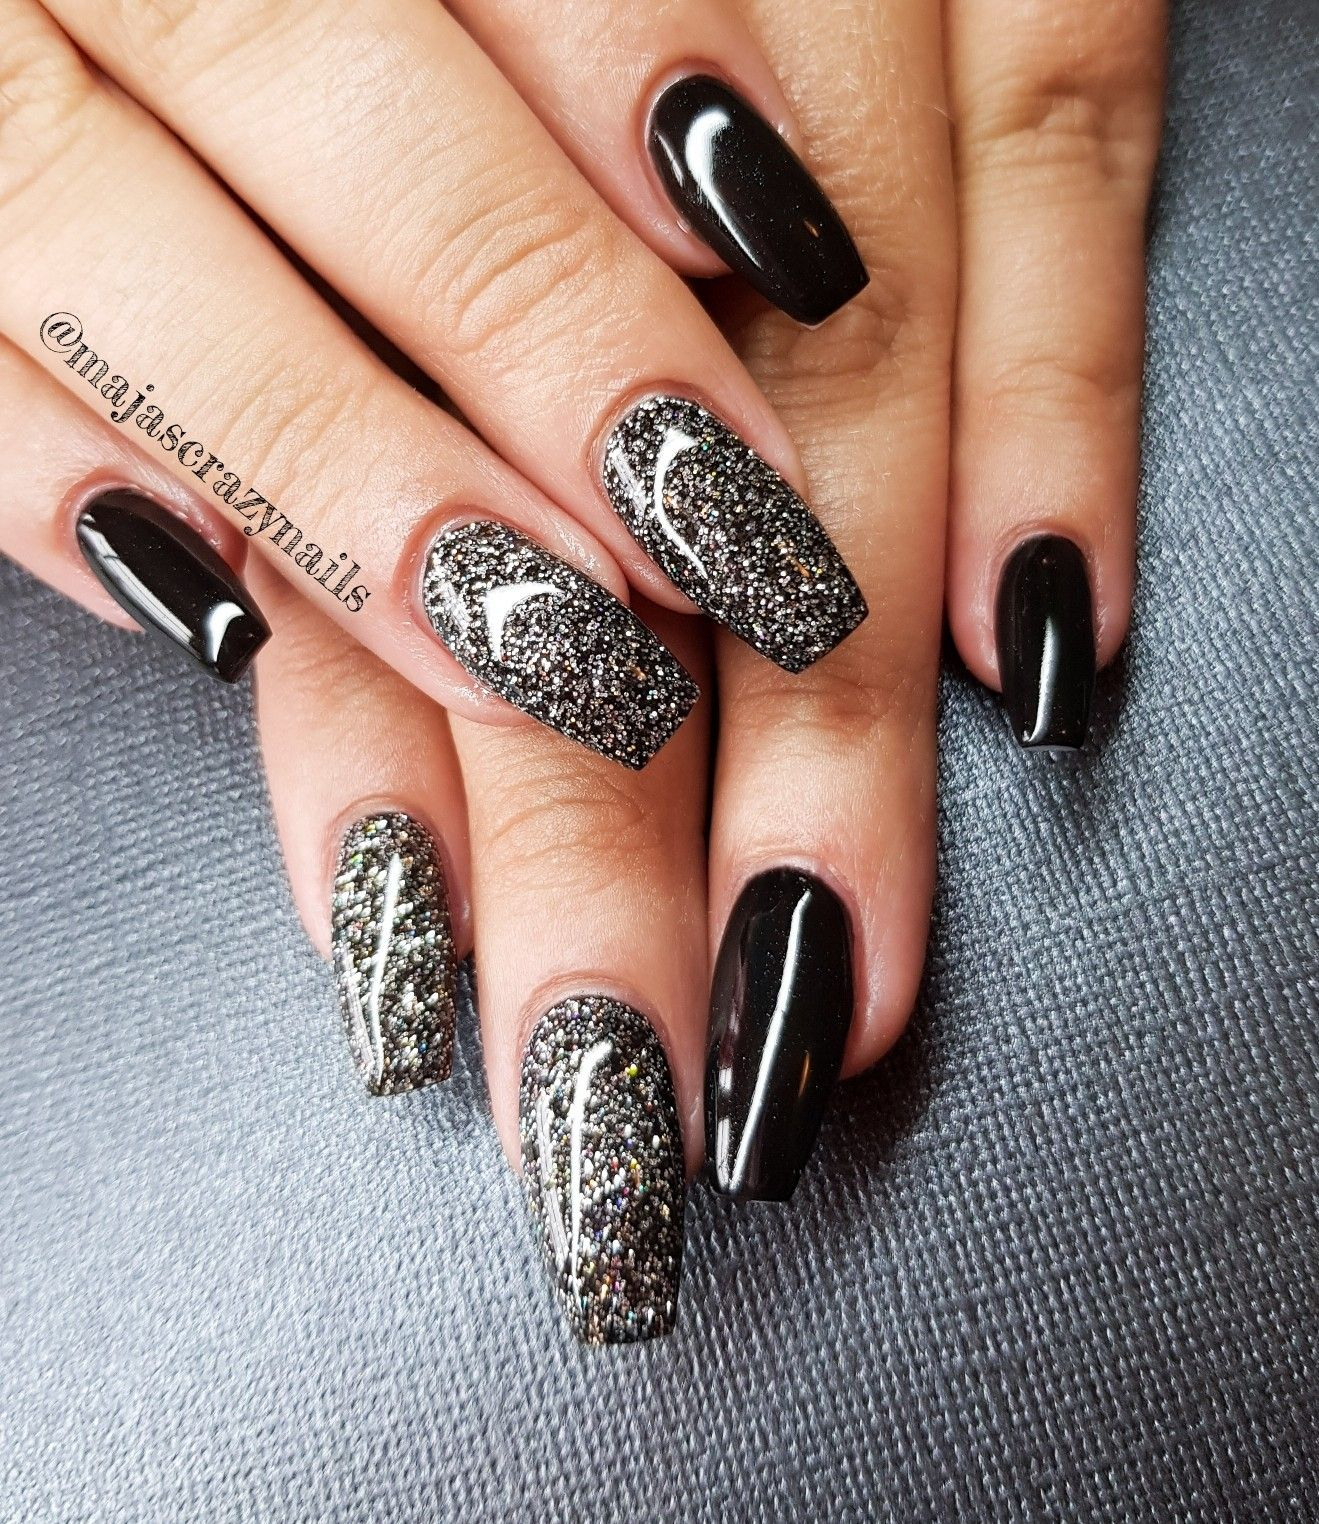 Light elegance products used. Design by me @misscrazynails 💅 se my ...